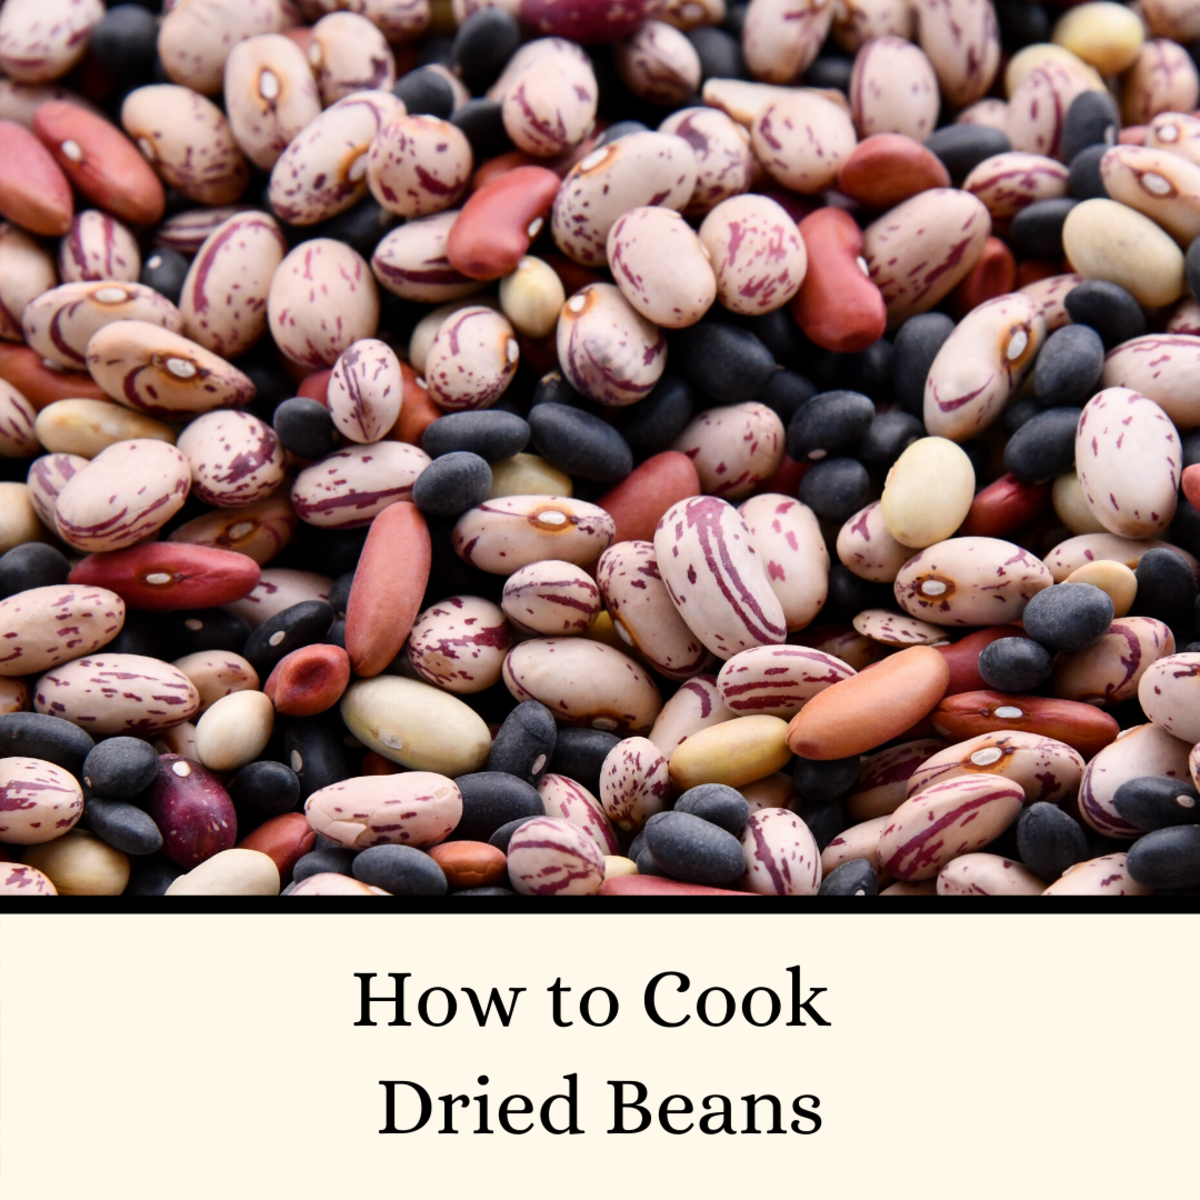 How to Buy, Store, and Cook Dried Beans